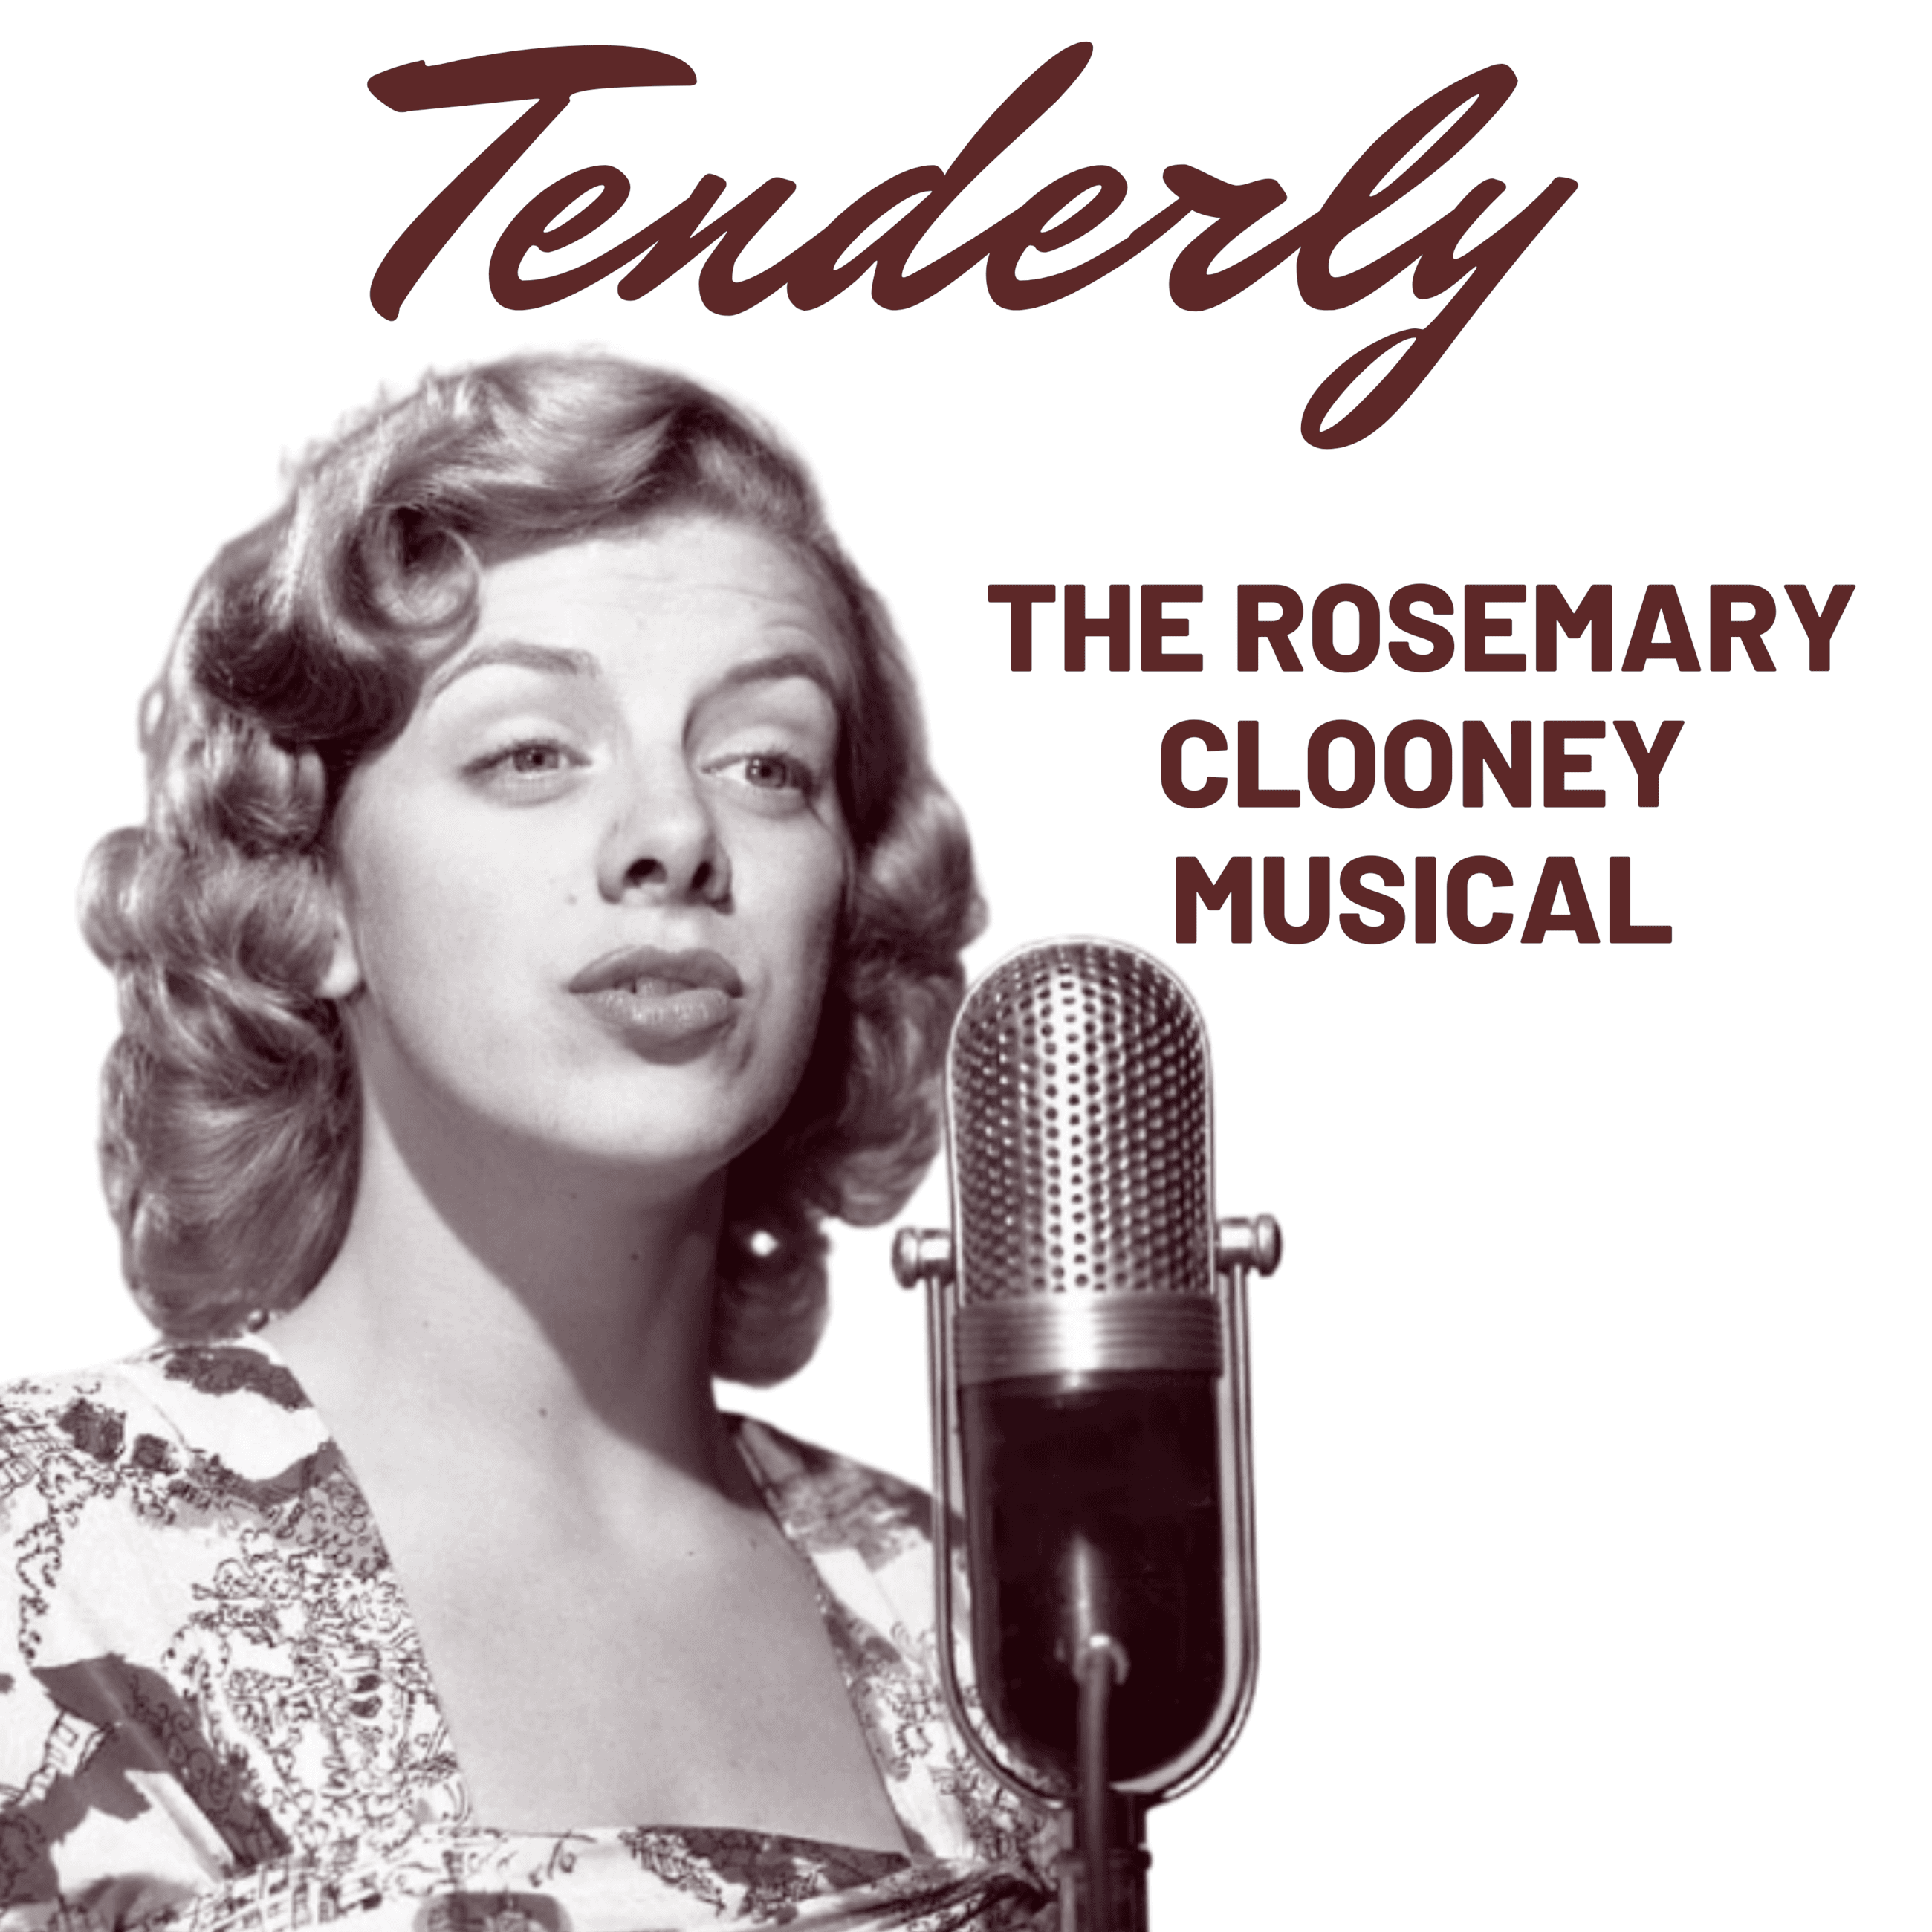 """Tenderly: The Rosemary Clooney Musical"""